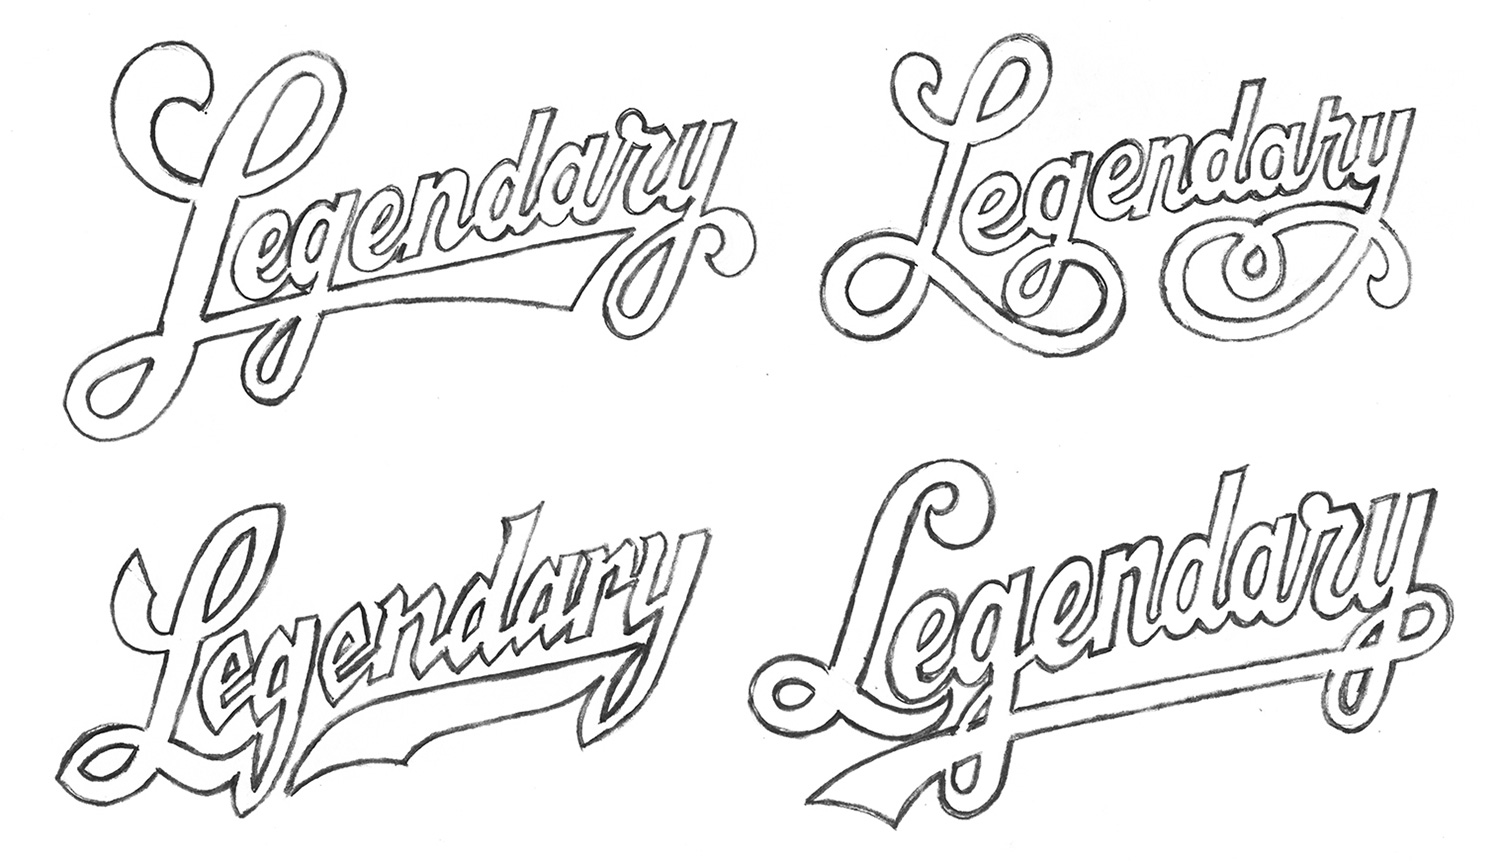 Legendary_Sketches.jpg